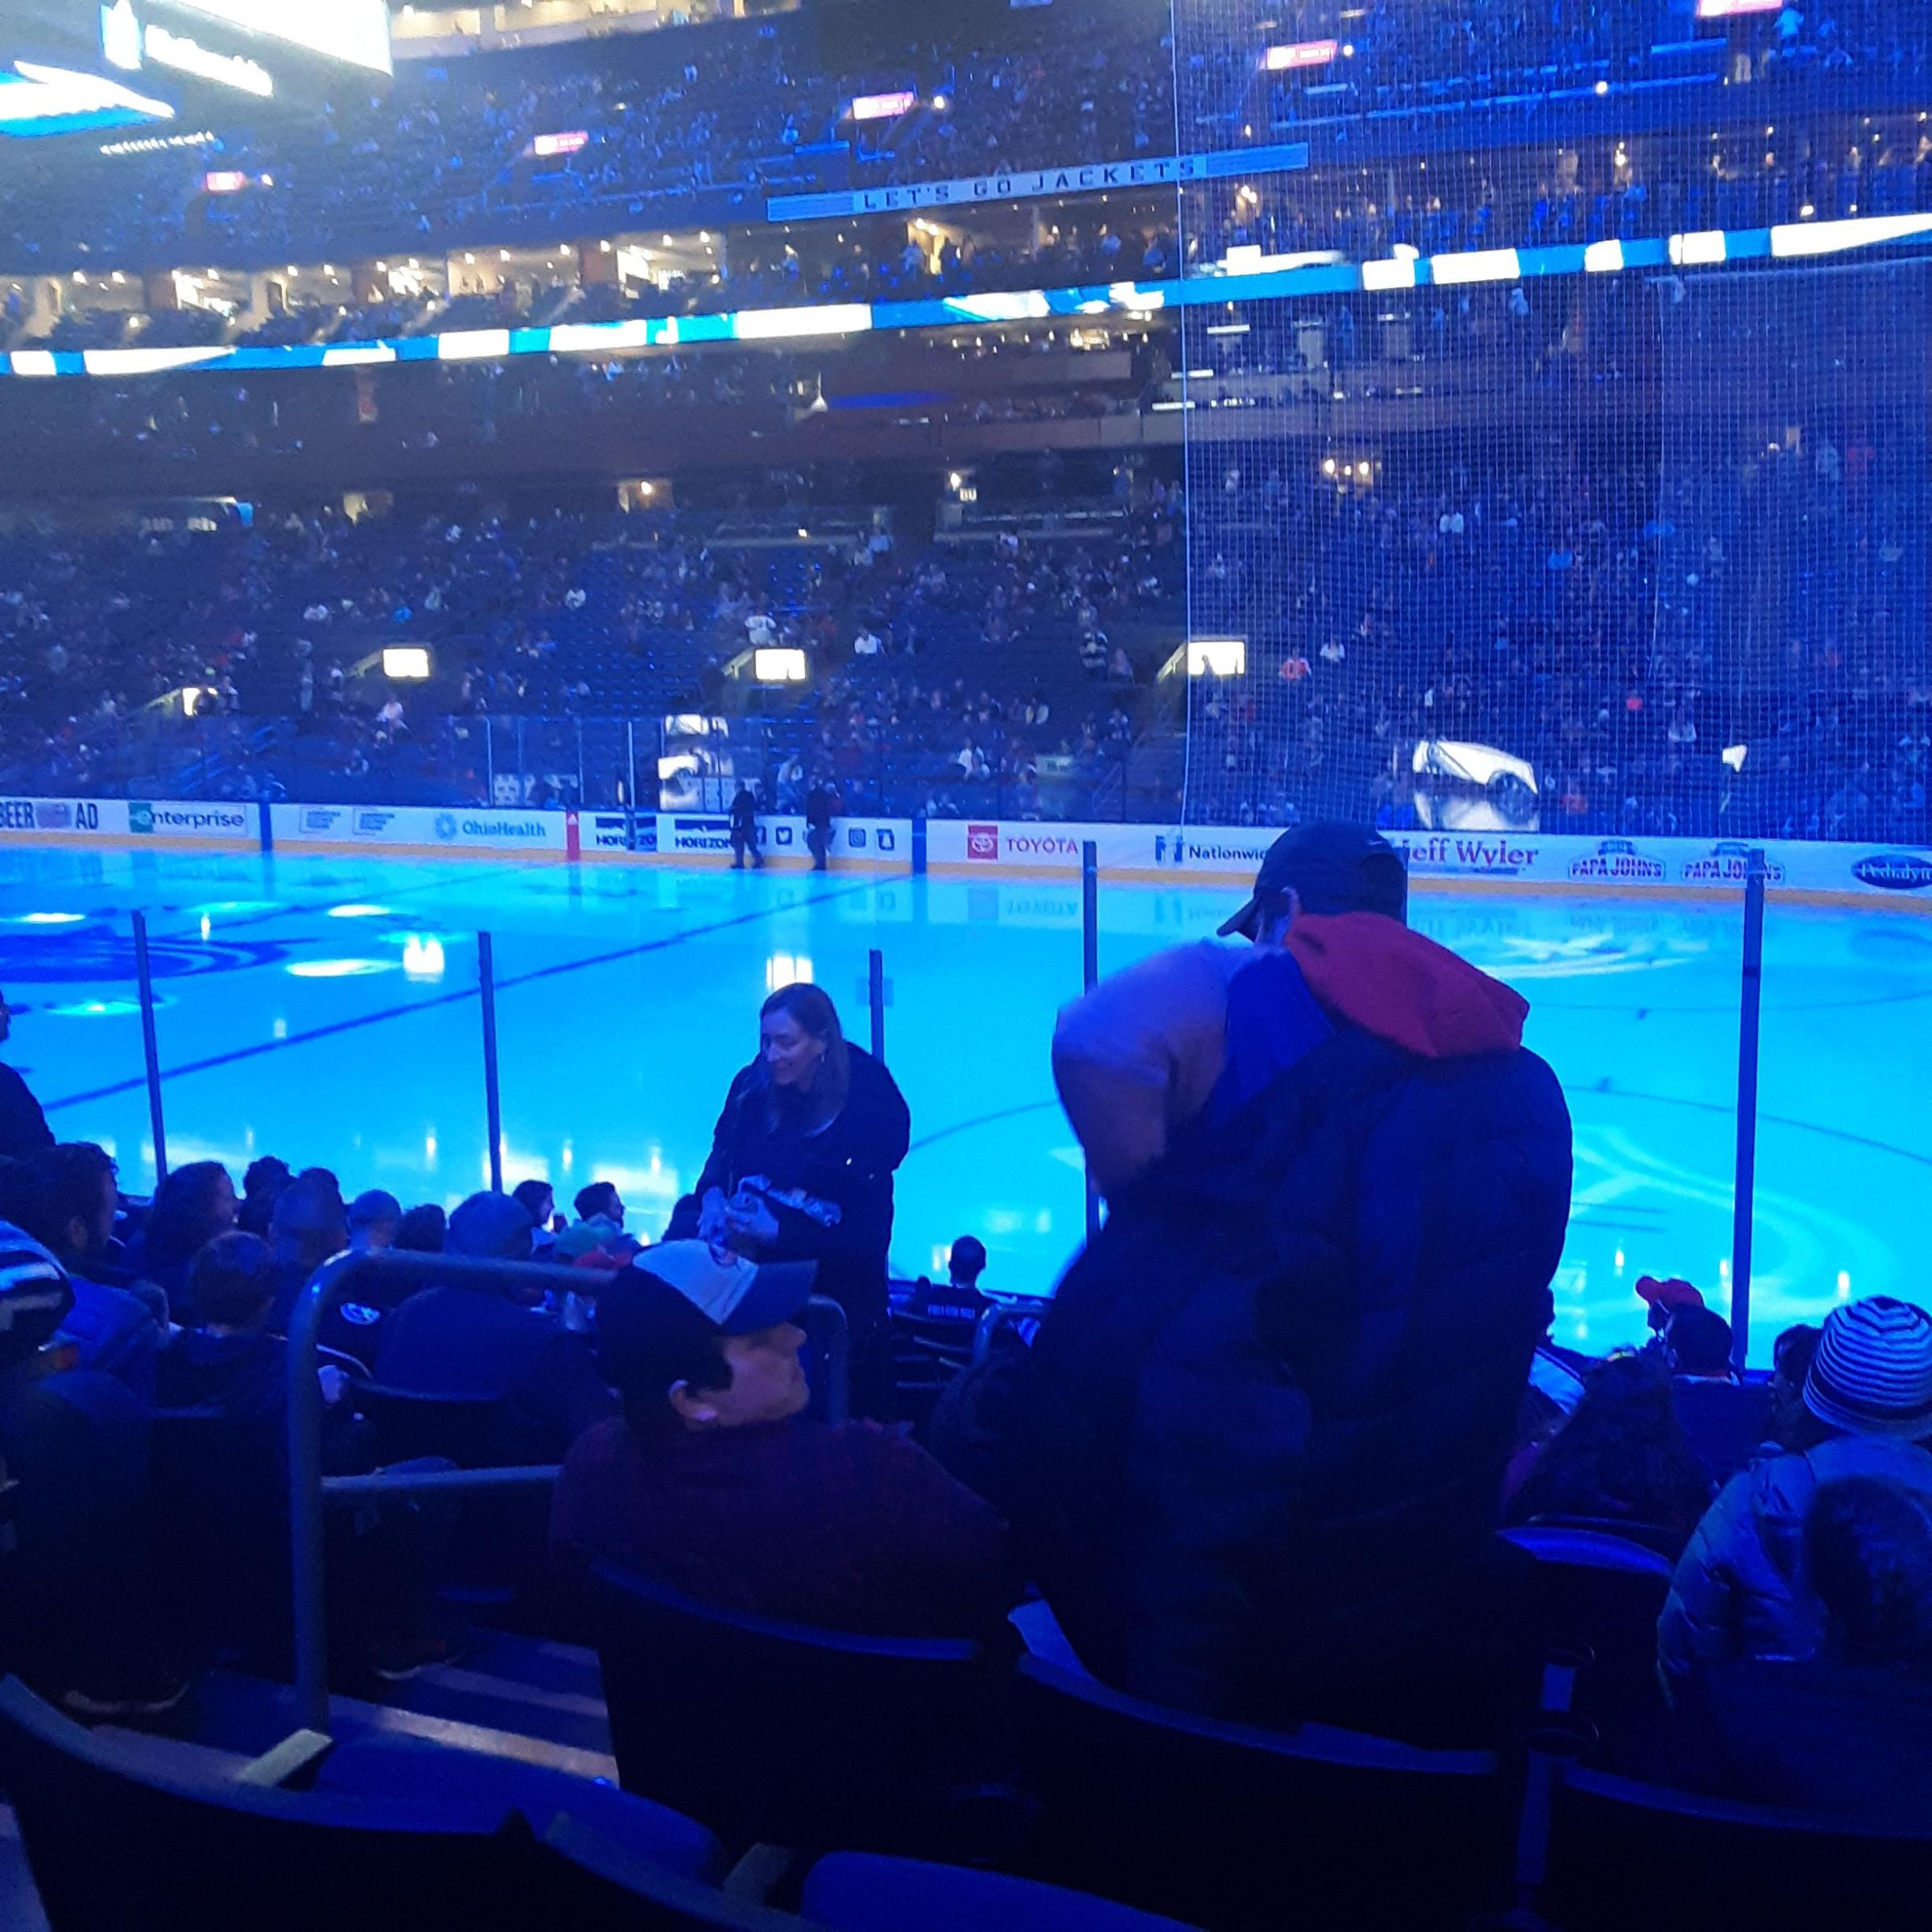 Columbus Blue Jackets Seat View for Nationwide Arena Section 101, Row S